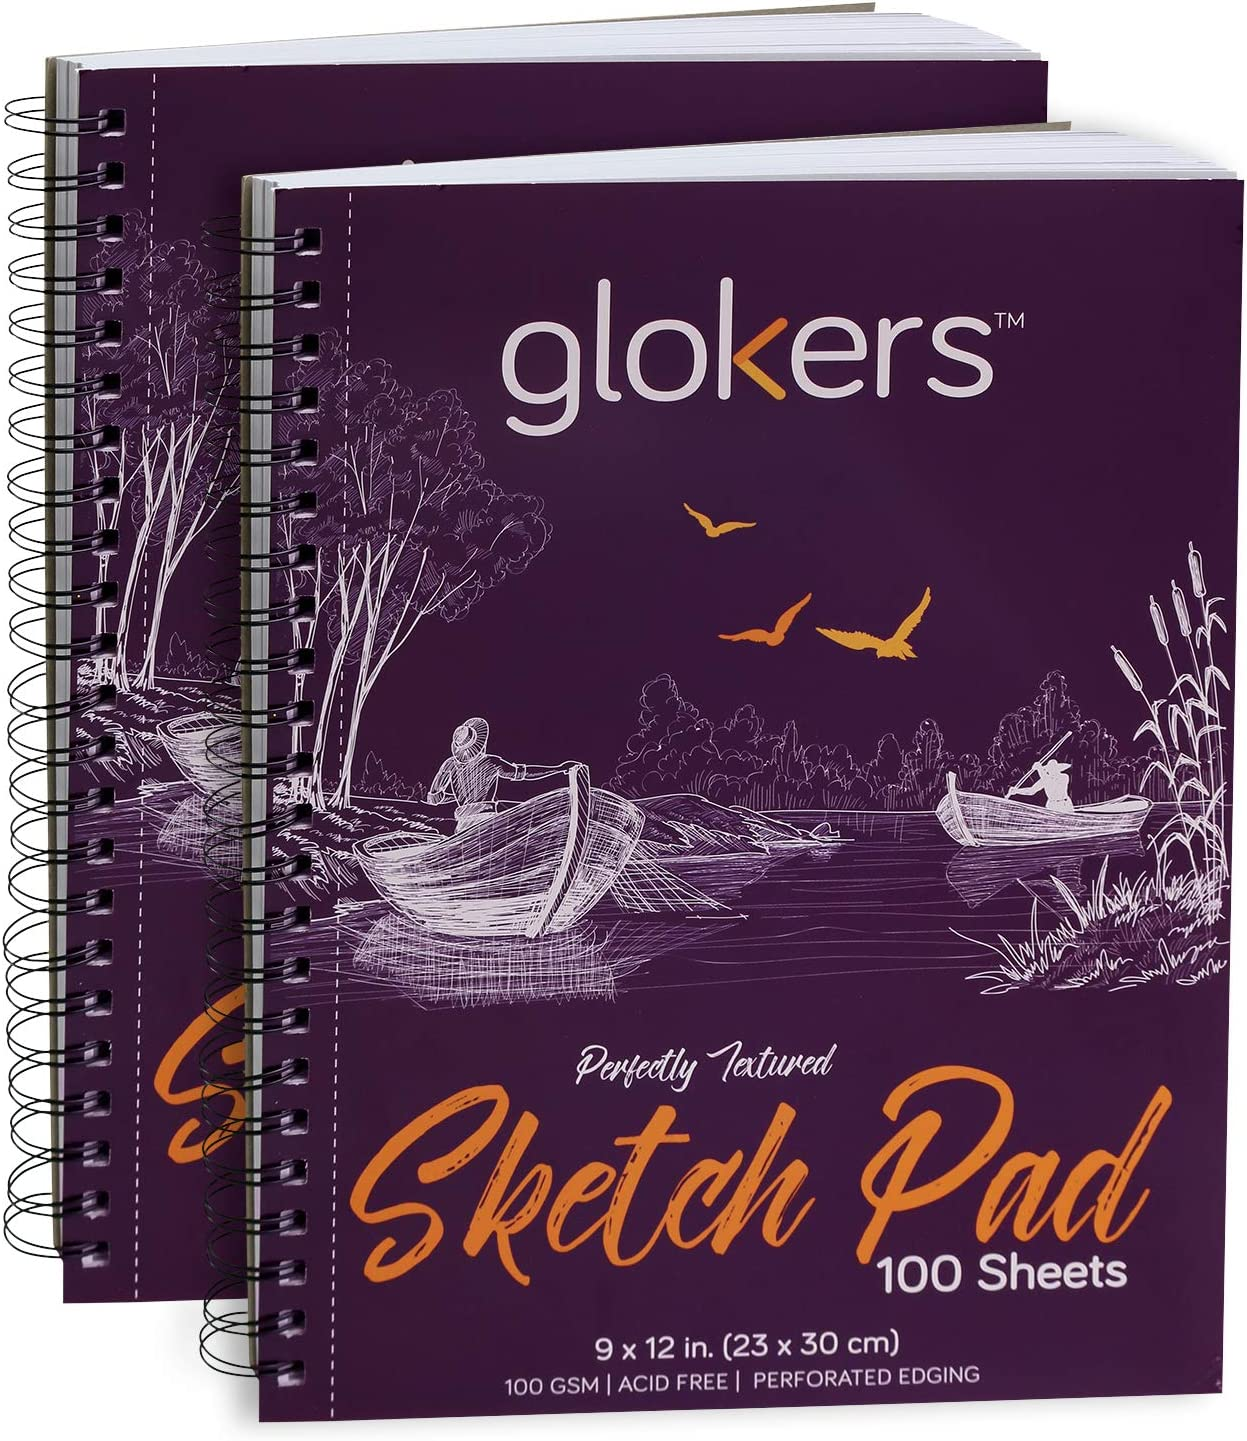 glokers Sketch Book - 2 Pack - 100 Sheets Each Sketch Pad - Acid Free, Medium Weight Paper – for Pencils, Charcoal, Oil Pastels, and Other Dry Media – Extra Durable Spiral Binding - 9X12 Inch Paper